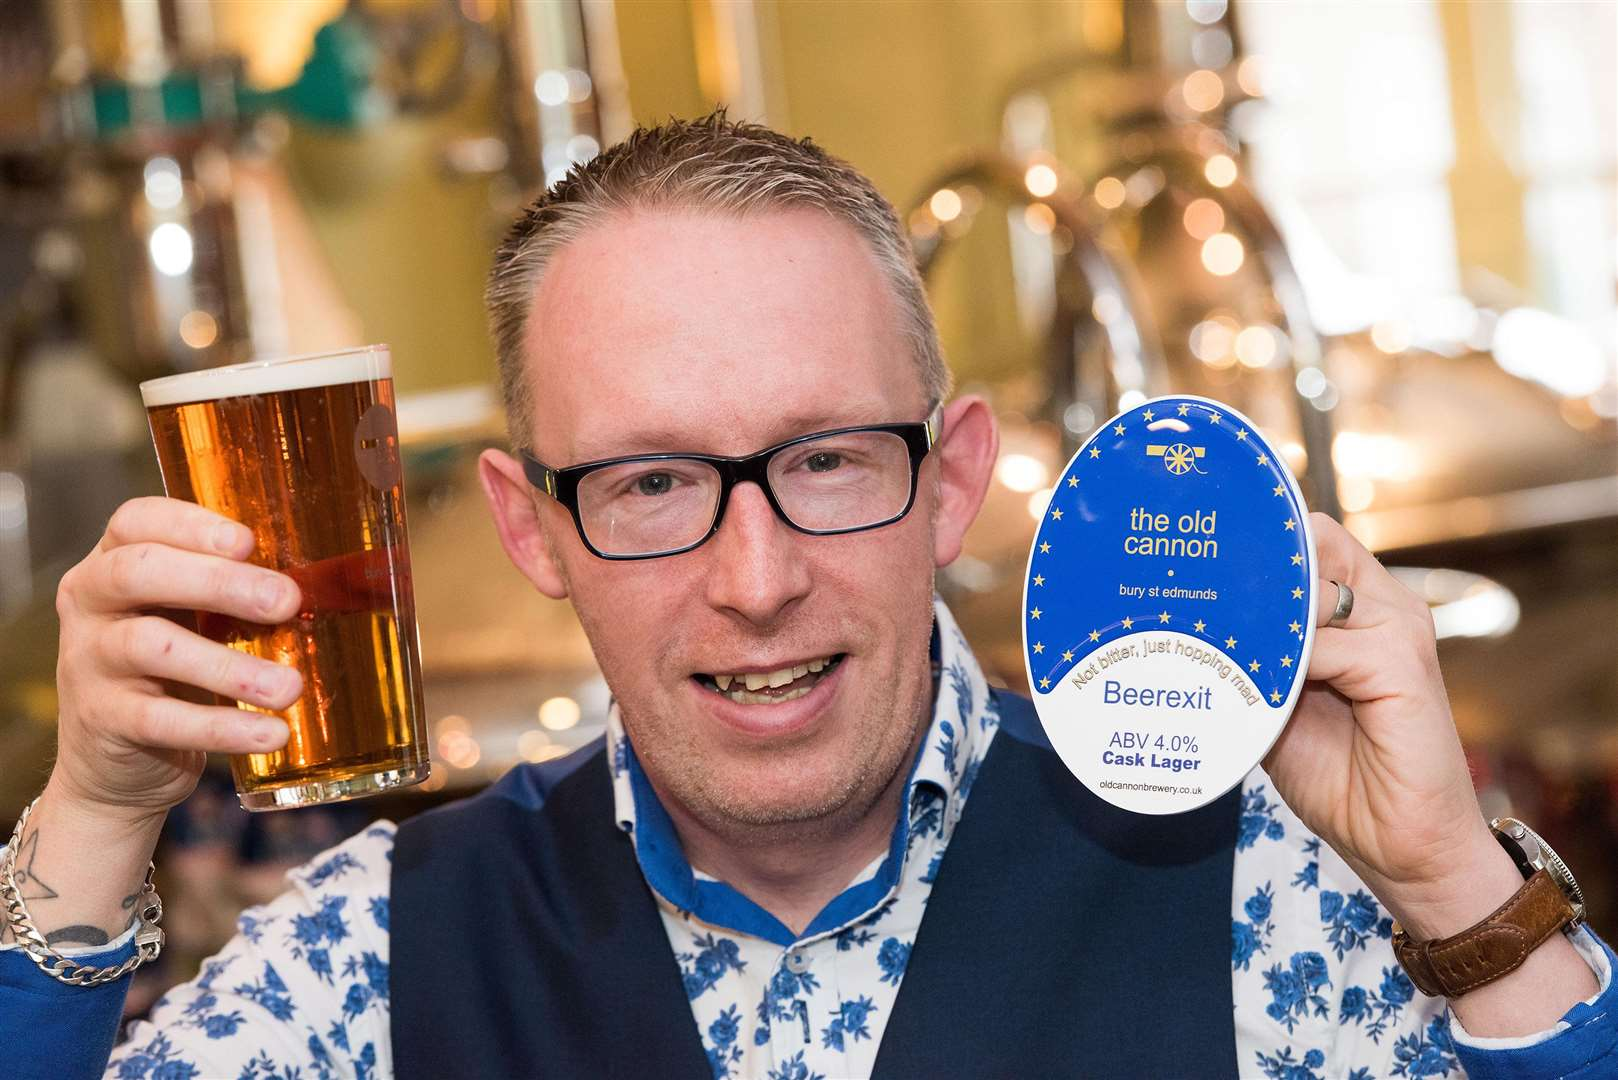 Old Canon Brewery Bury St Edmunds Craig Nicholls manager with their new Brexit Beer. Picture Mark Westley. (7026395)